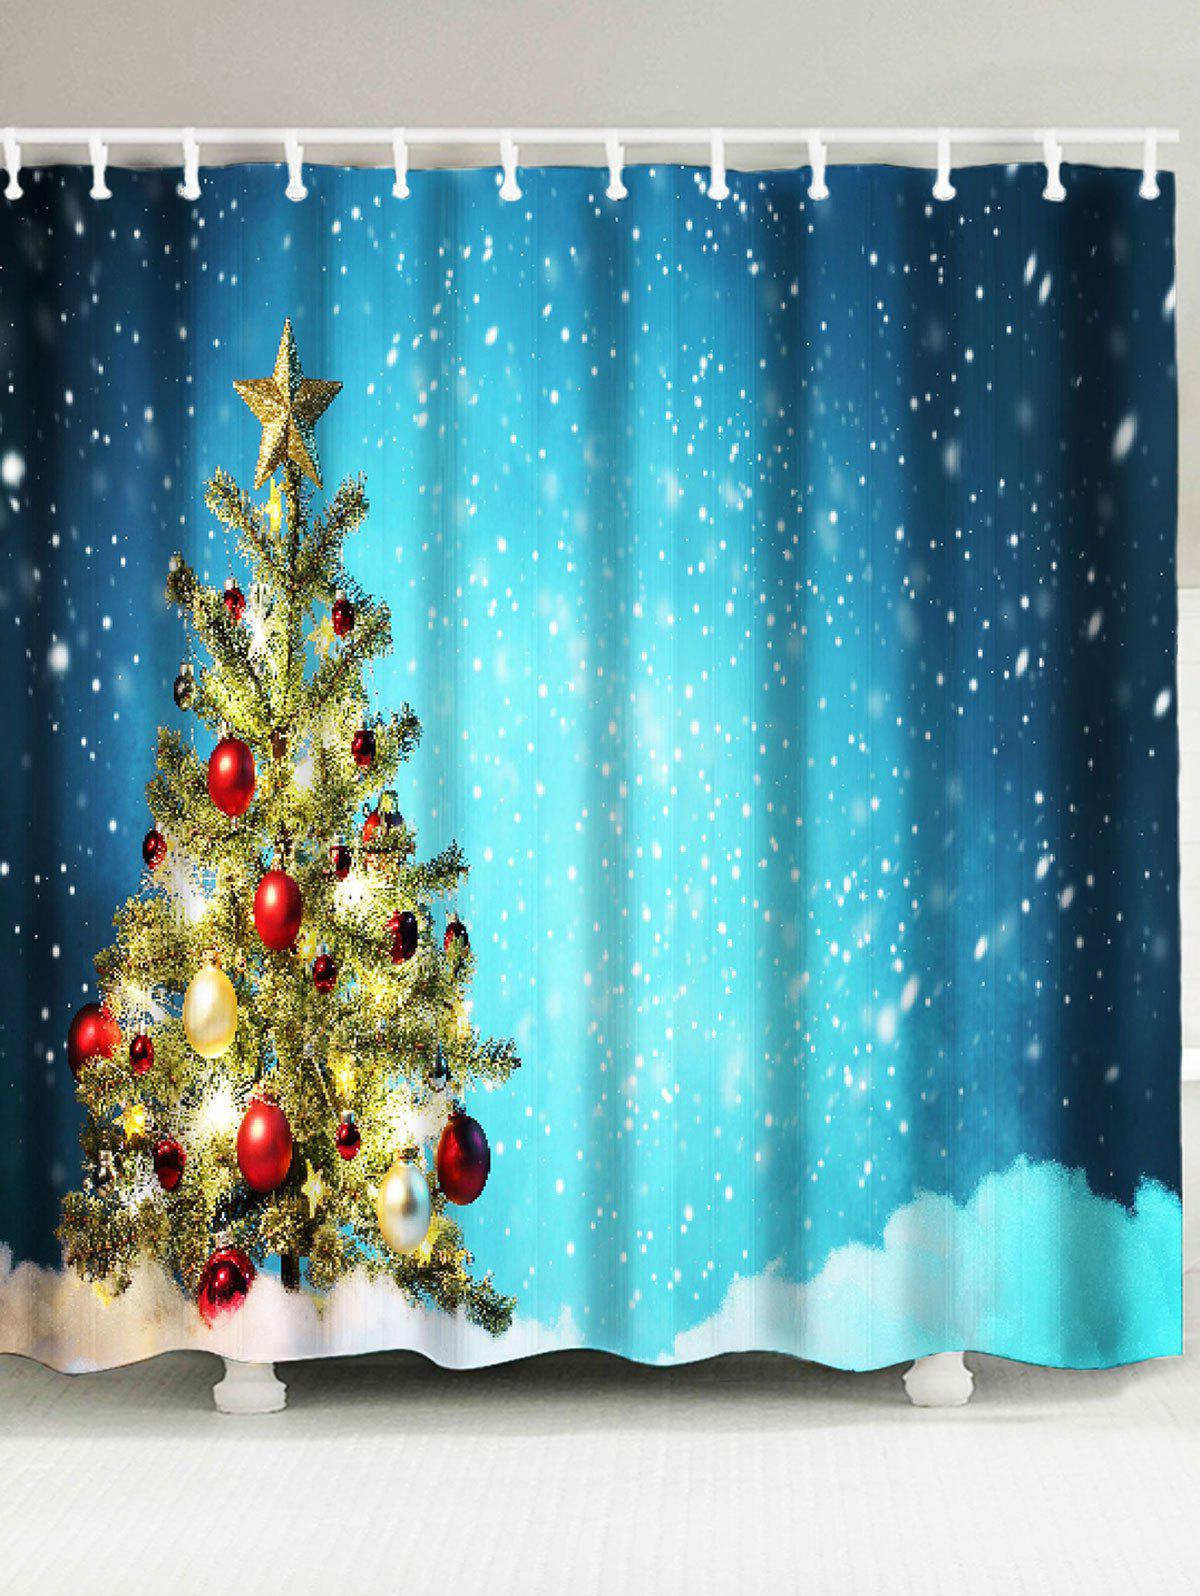 2018 snow covering christmas tree patterned shower curtain colorful w inch l inch in shower. Black Bedroom Furniture Sets. Home Design Ideas